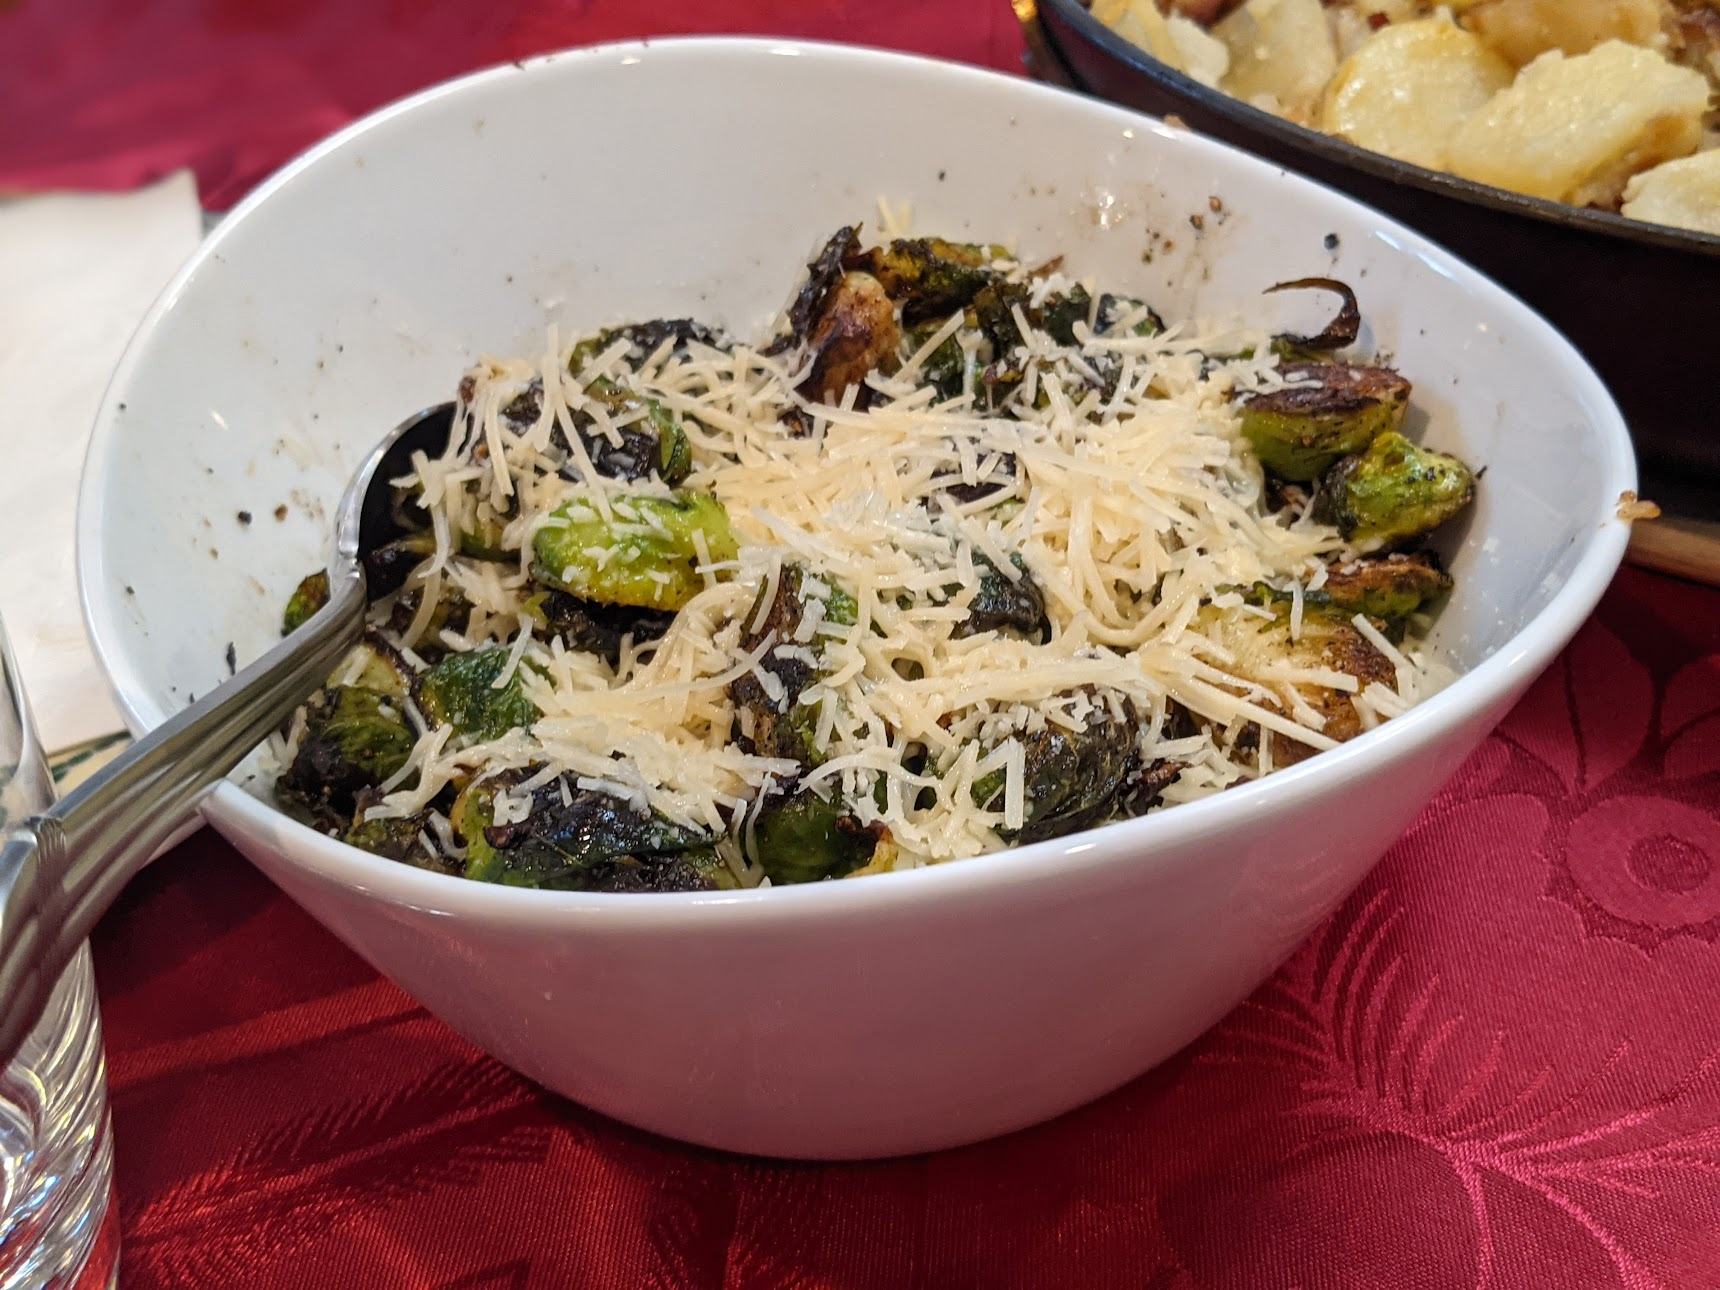 Cooked Brussels sprouts in a bowl